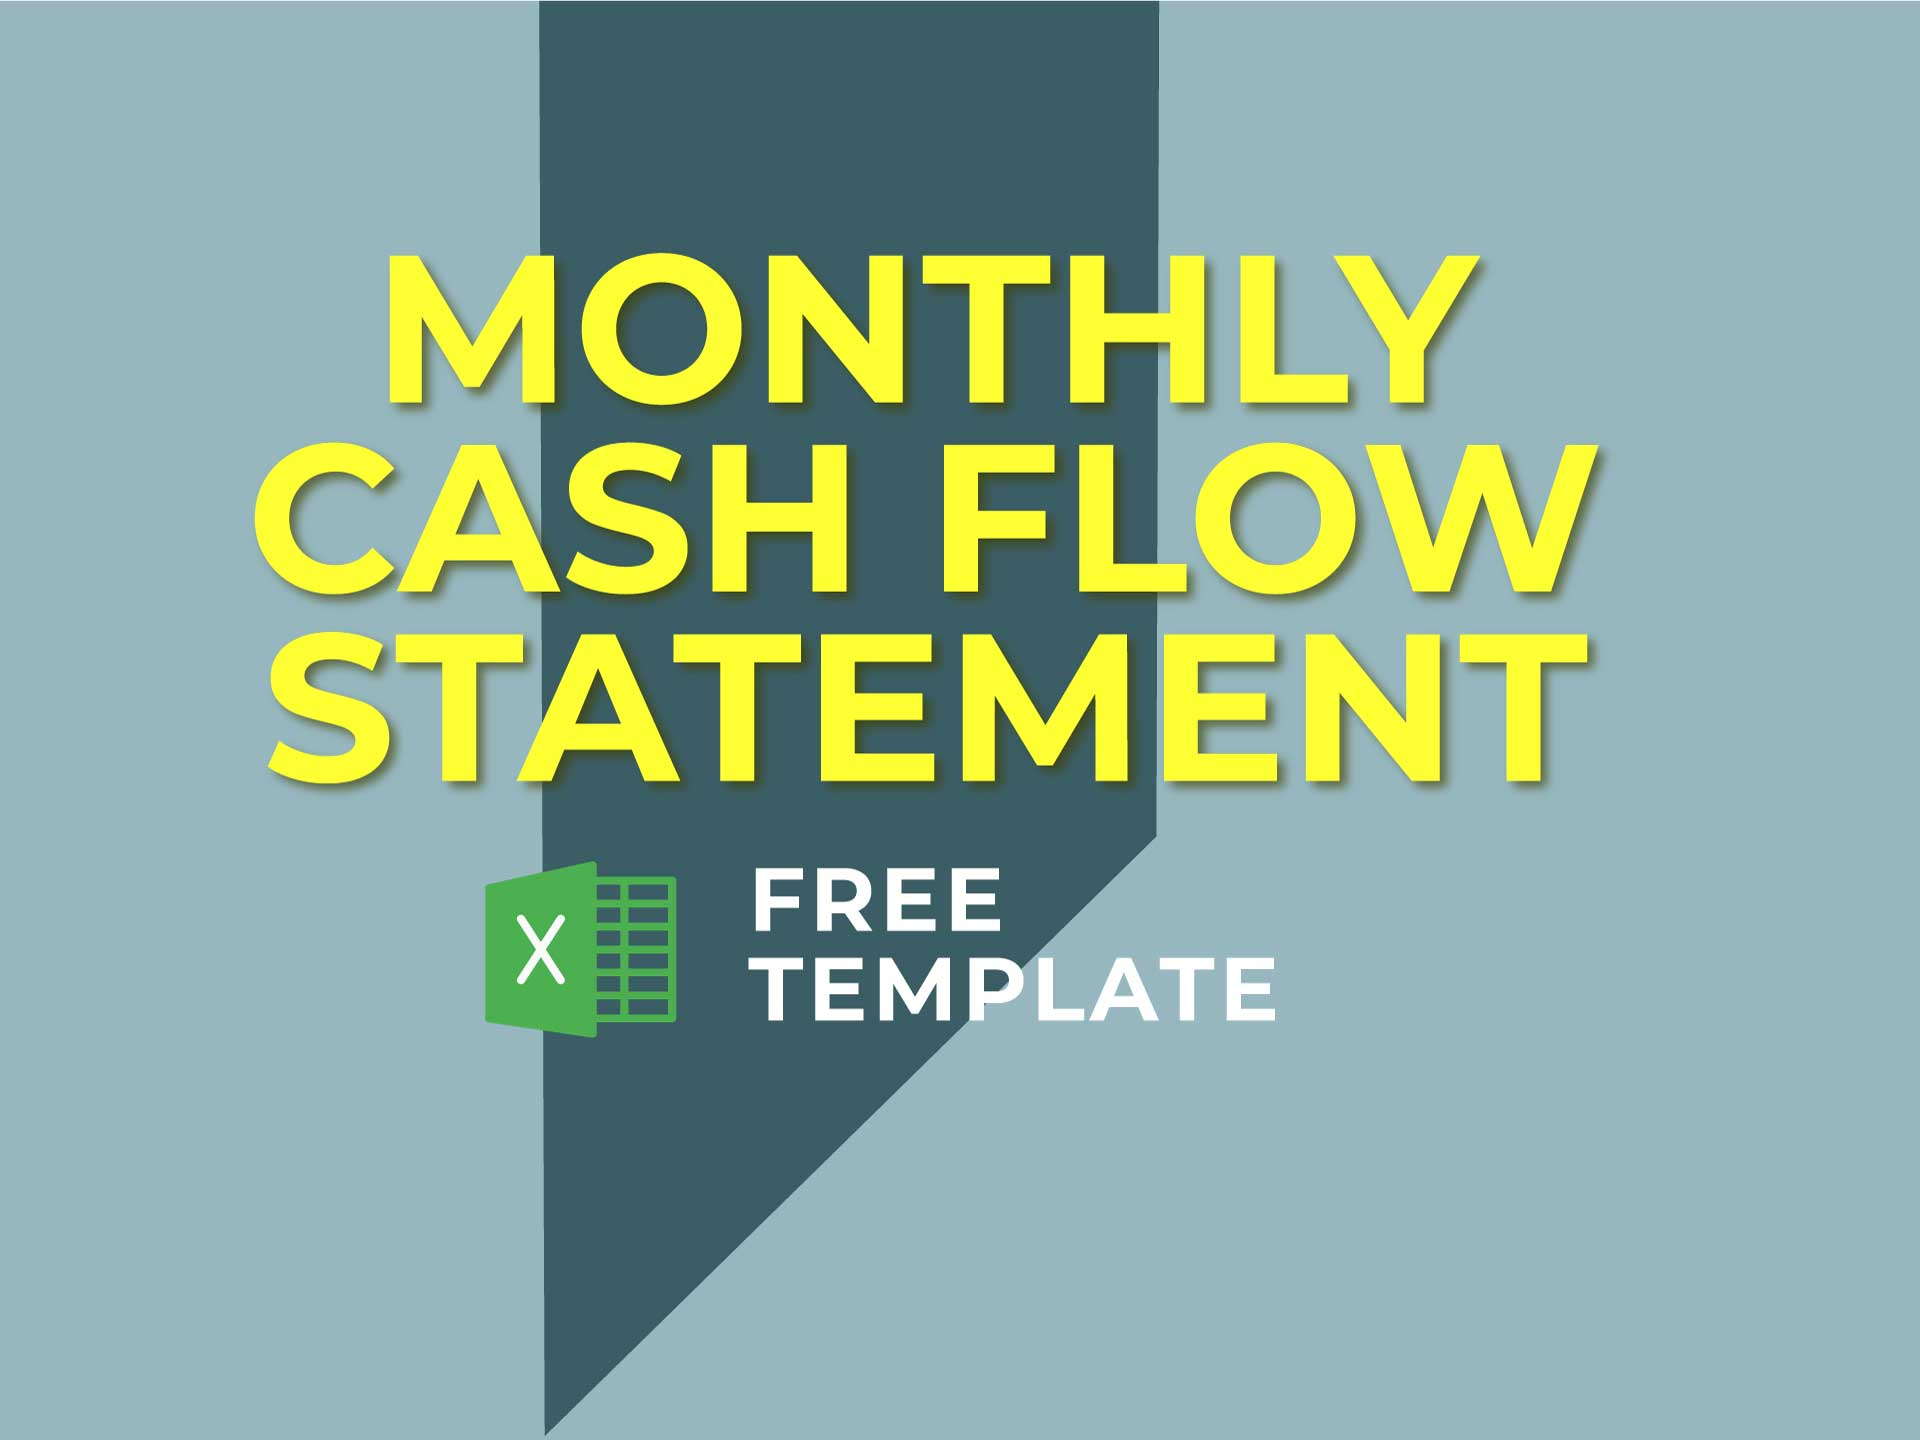 Monthly Cash Flow Statement